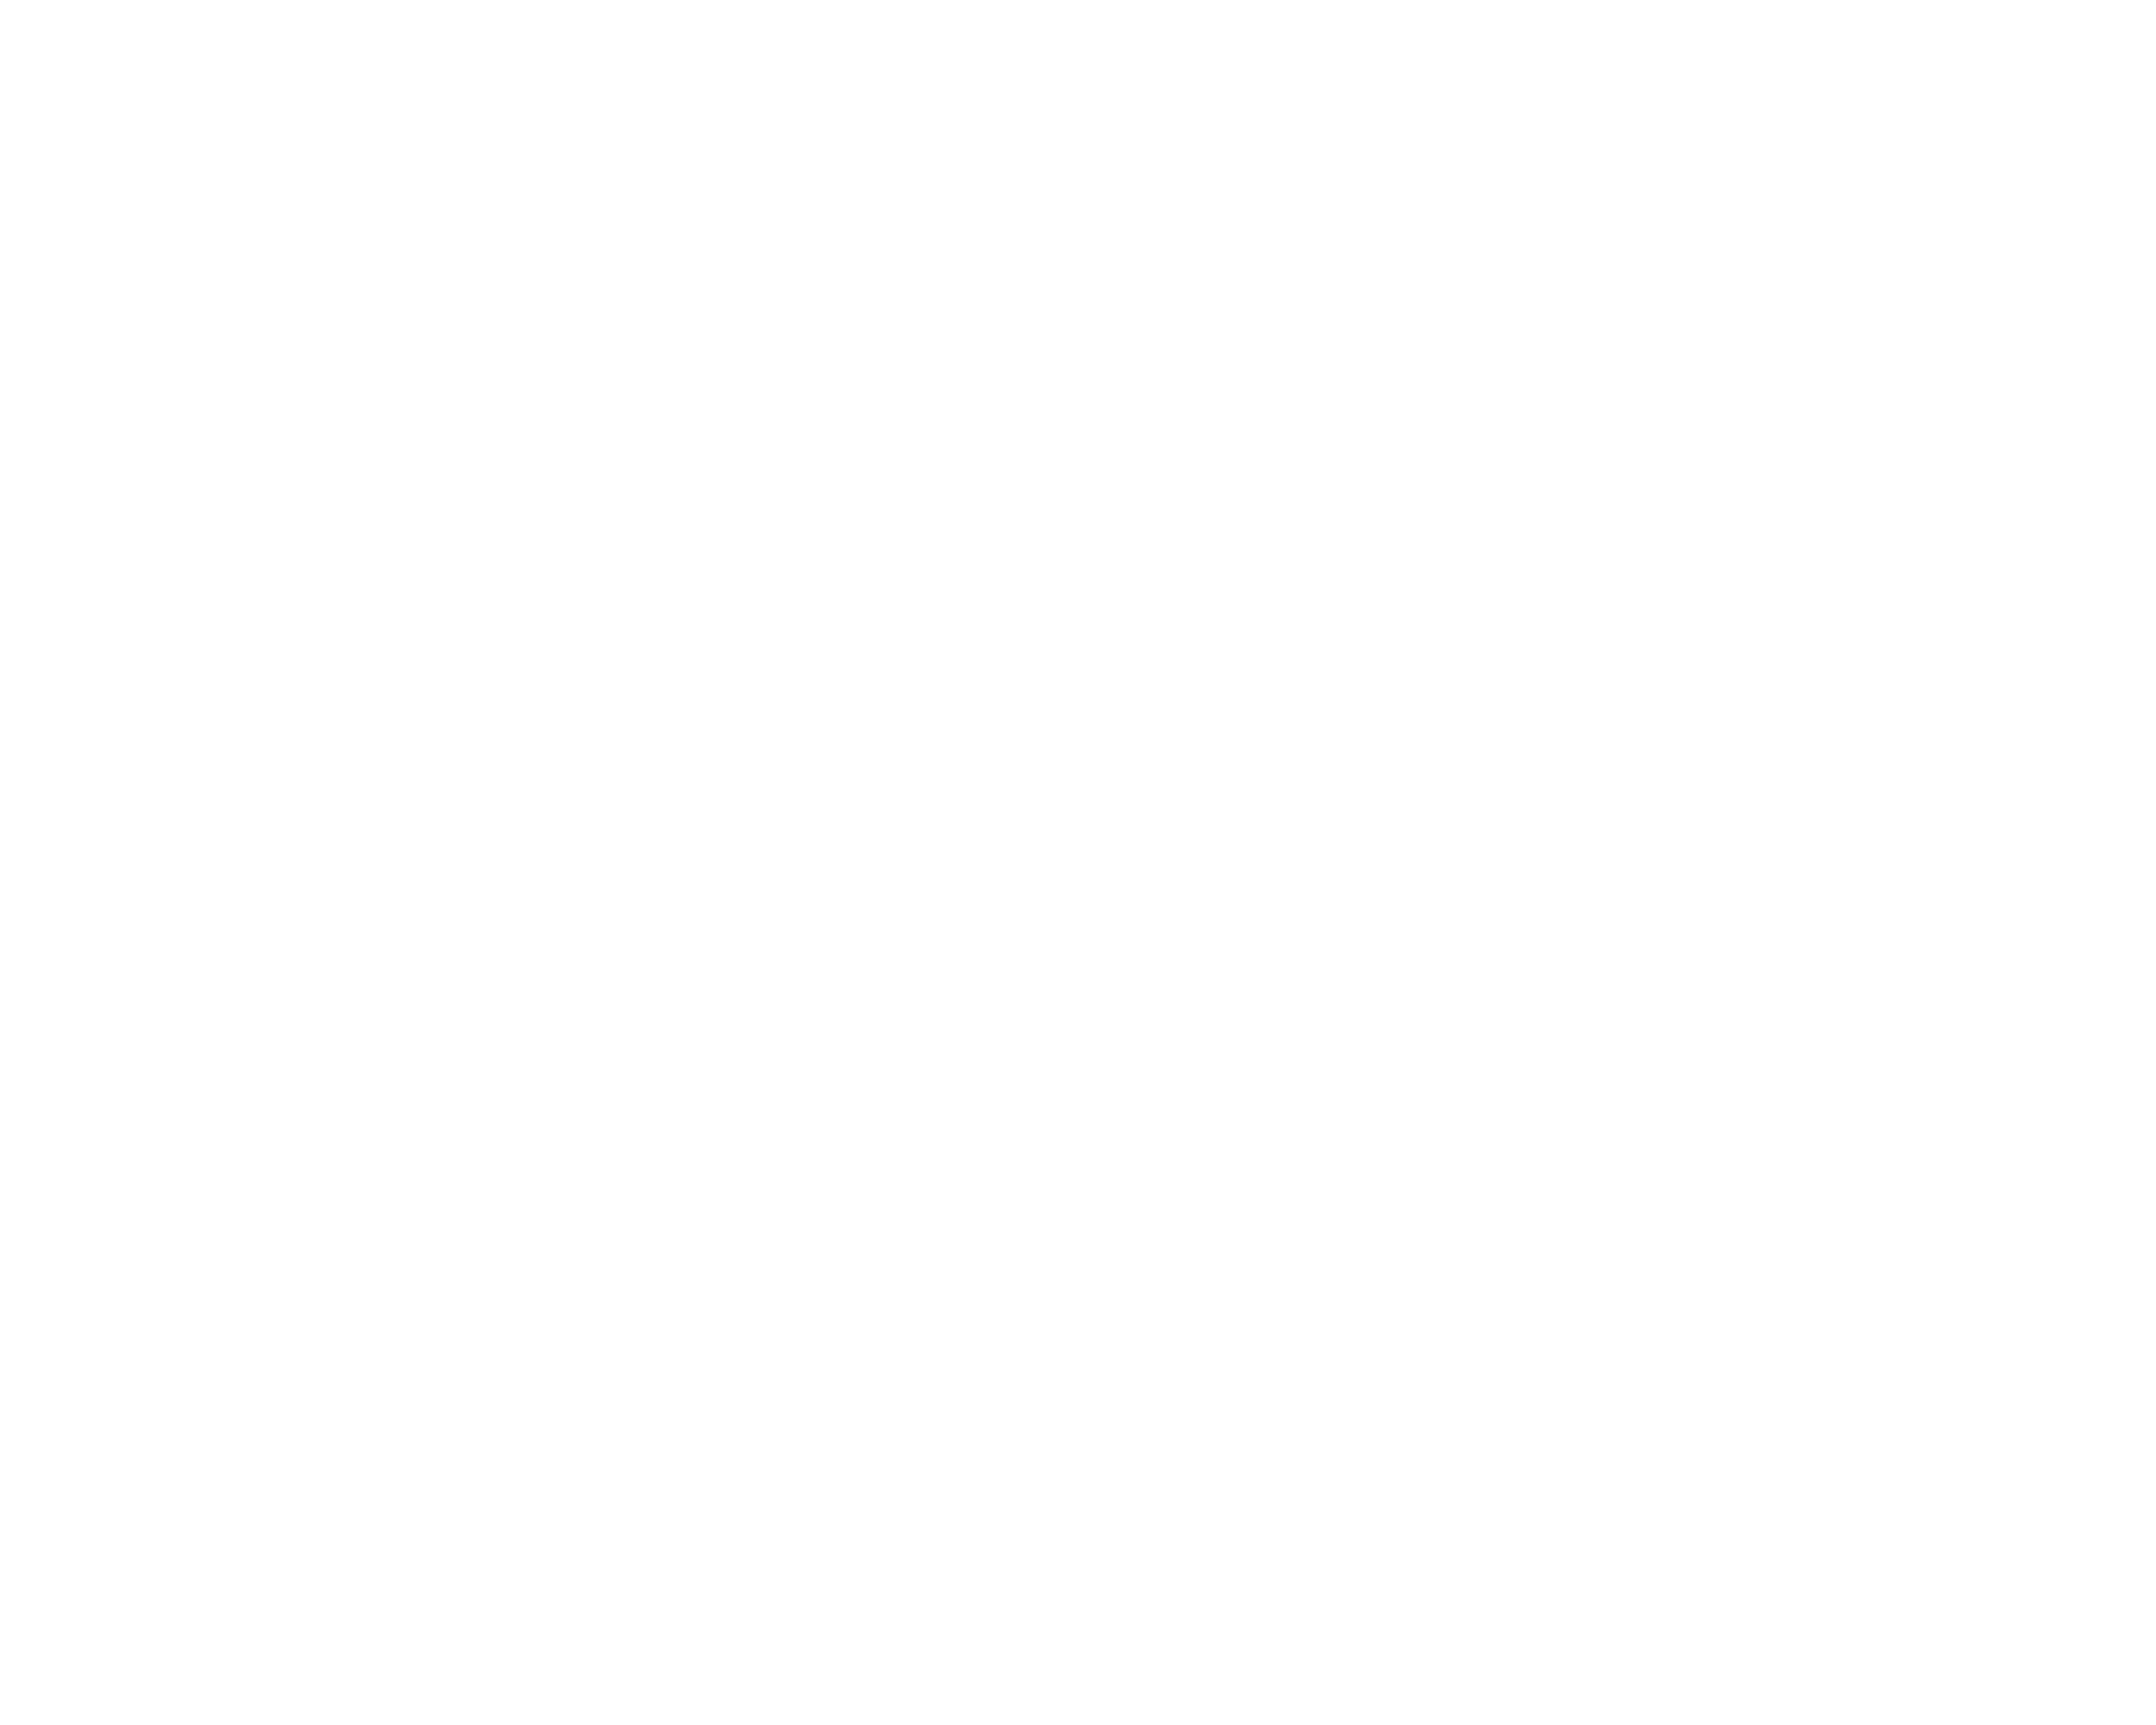 natures icons logo hi res black - Wed 20 July 2016